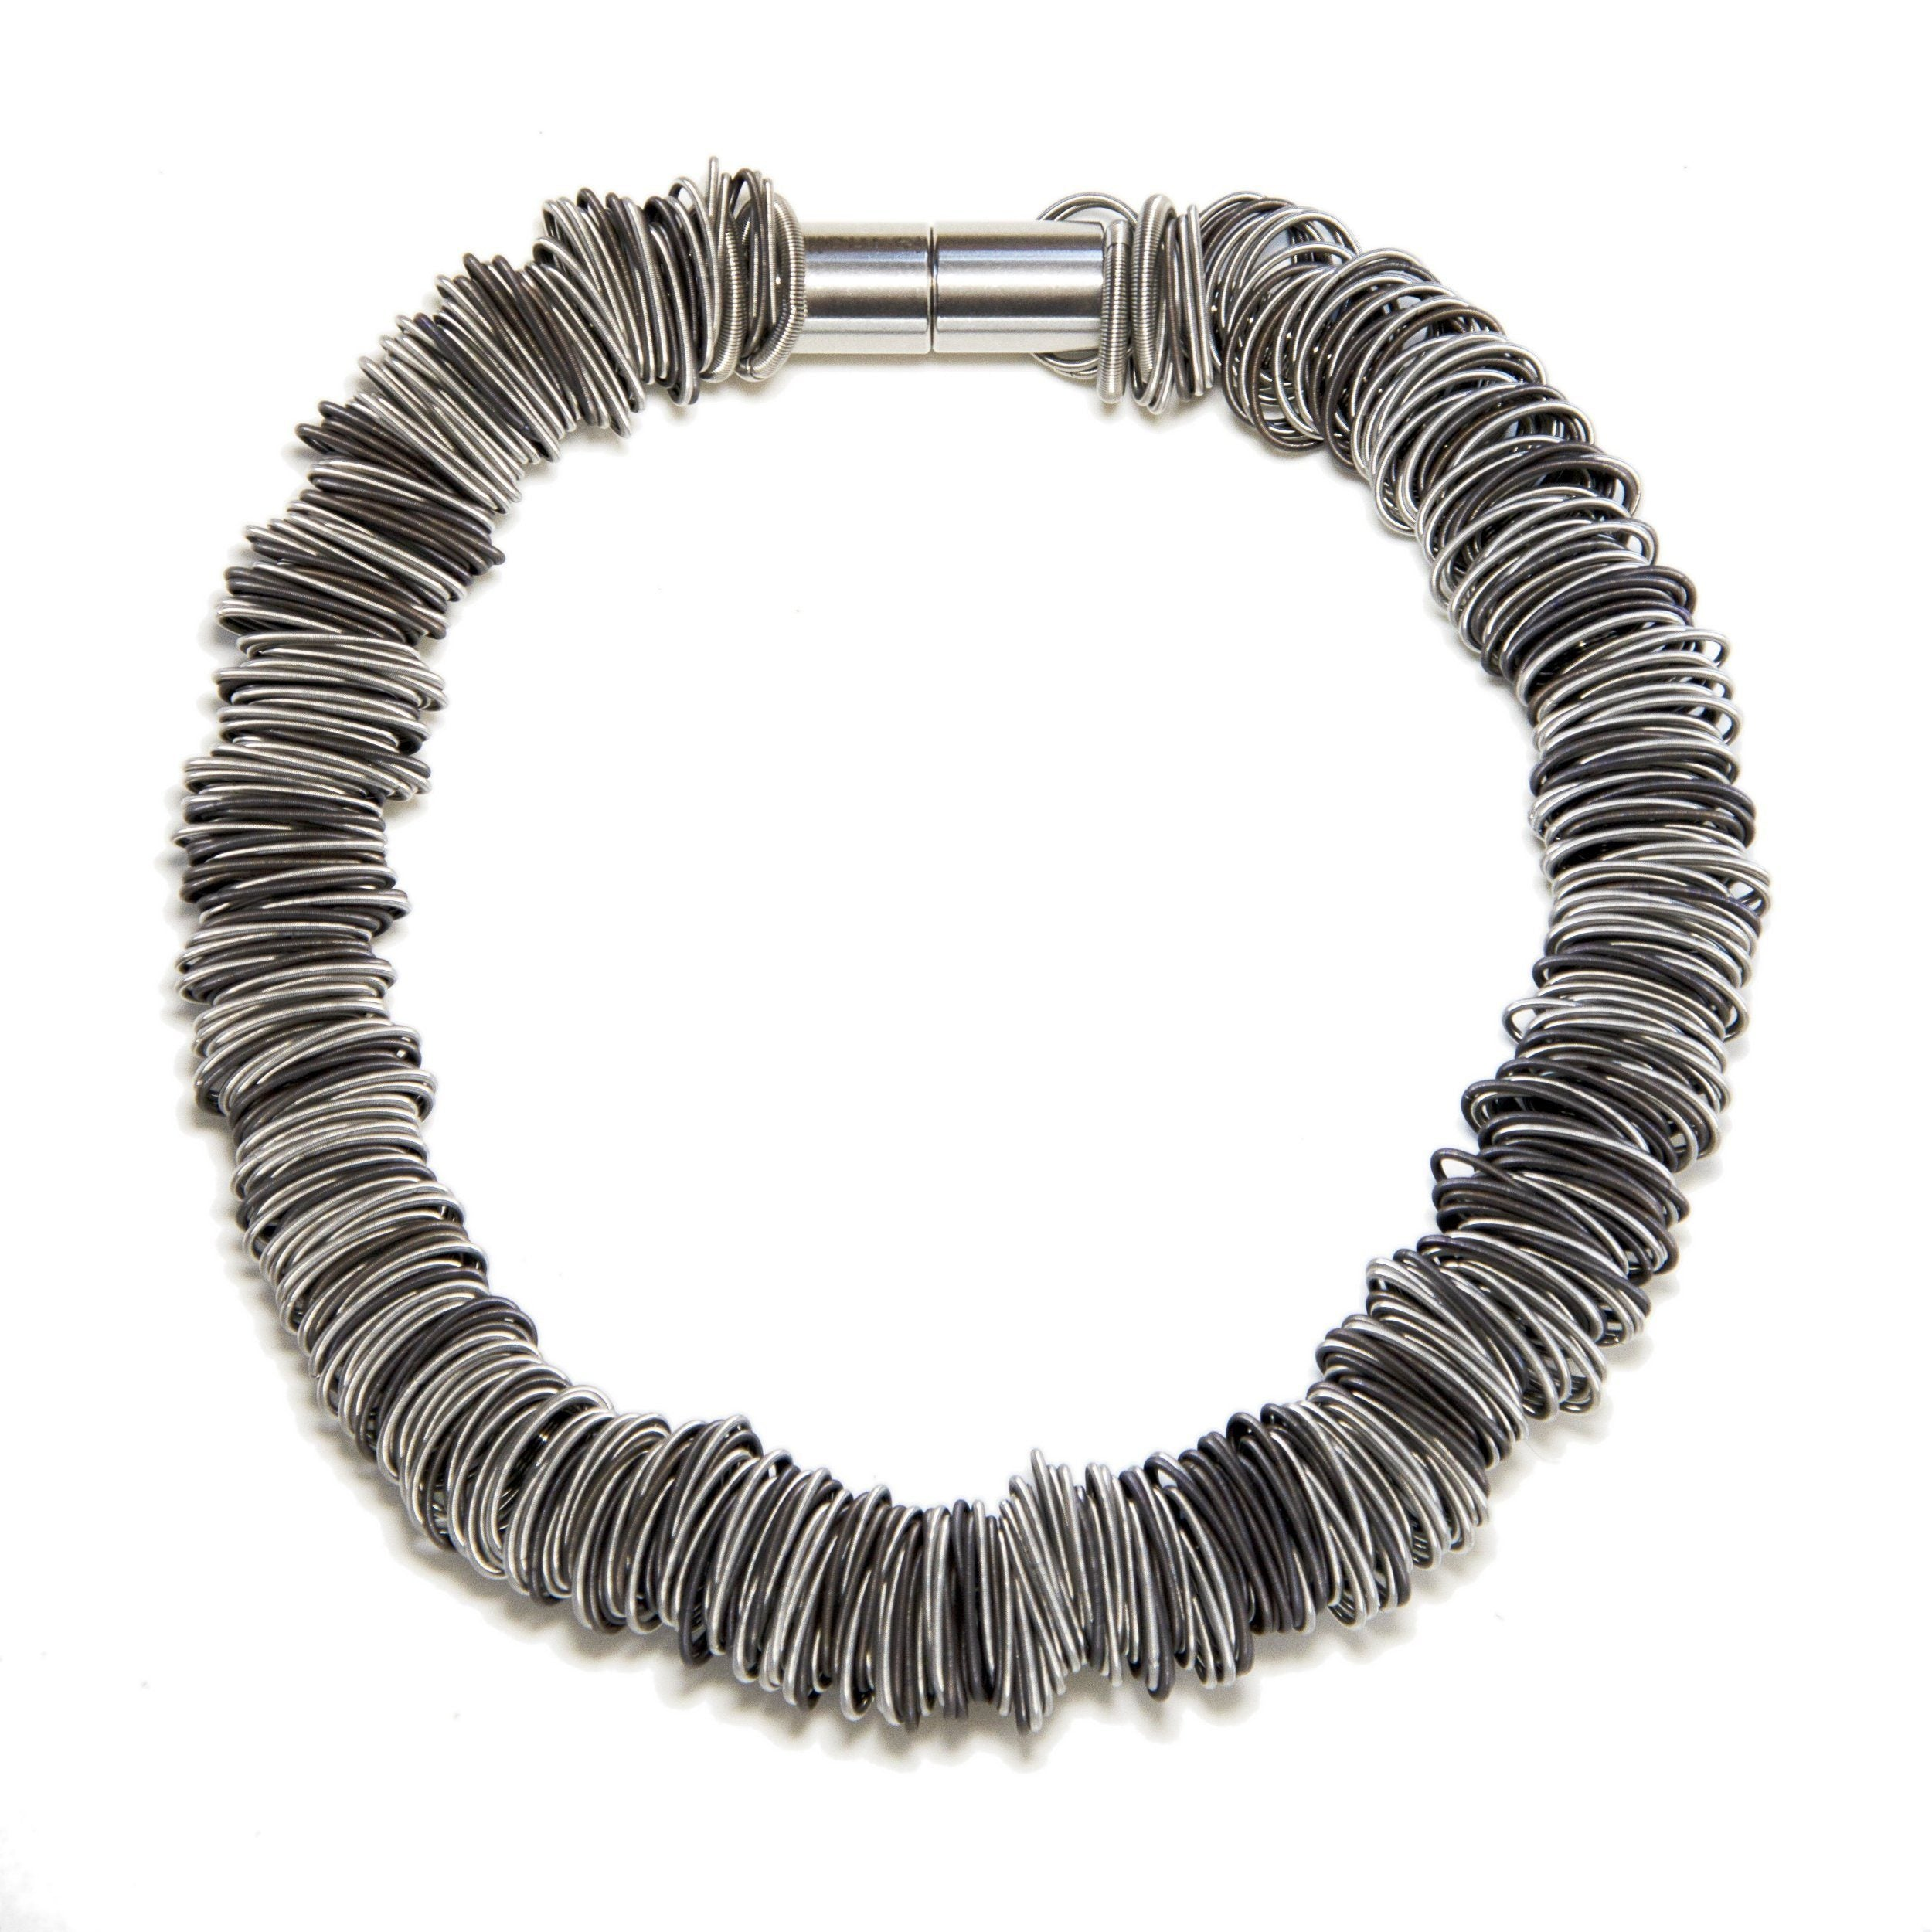 La Mollla Maxi One Necklace Mixed Dark